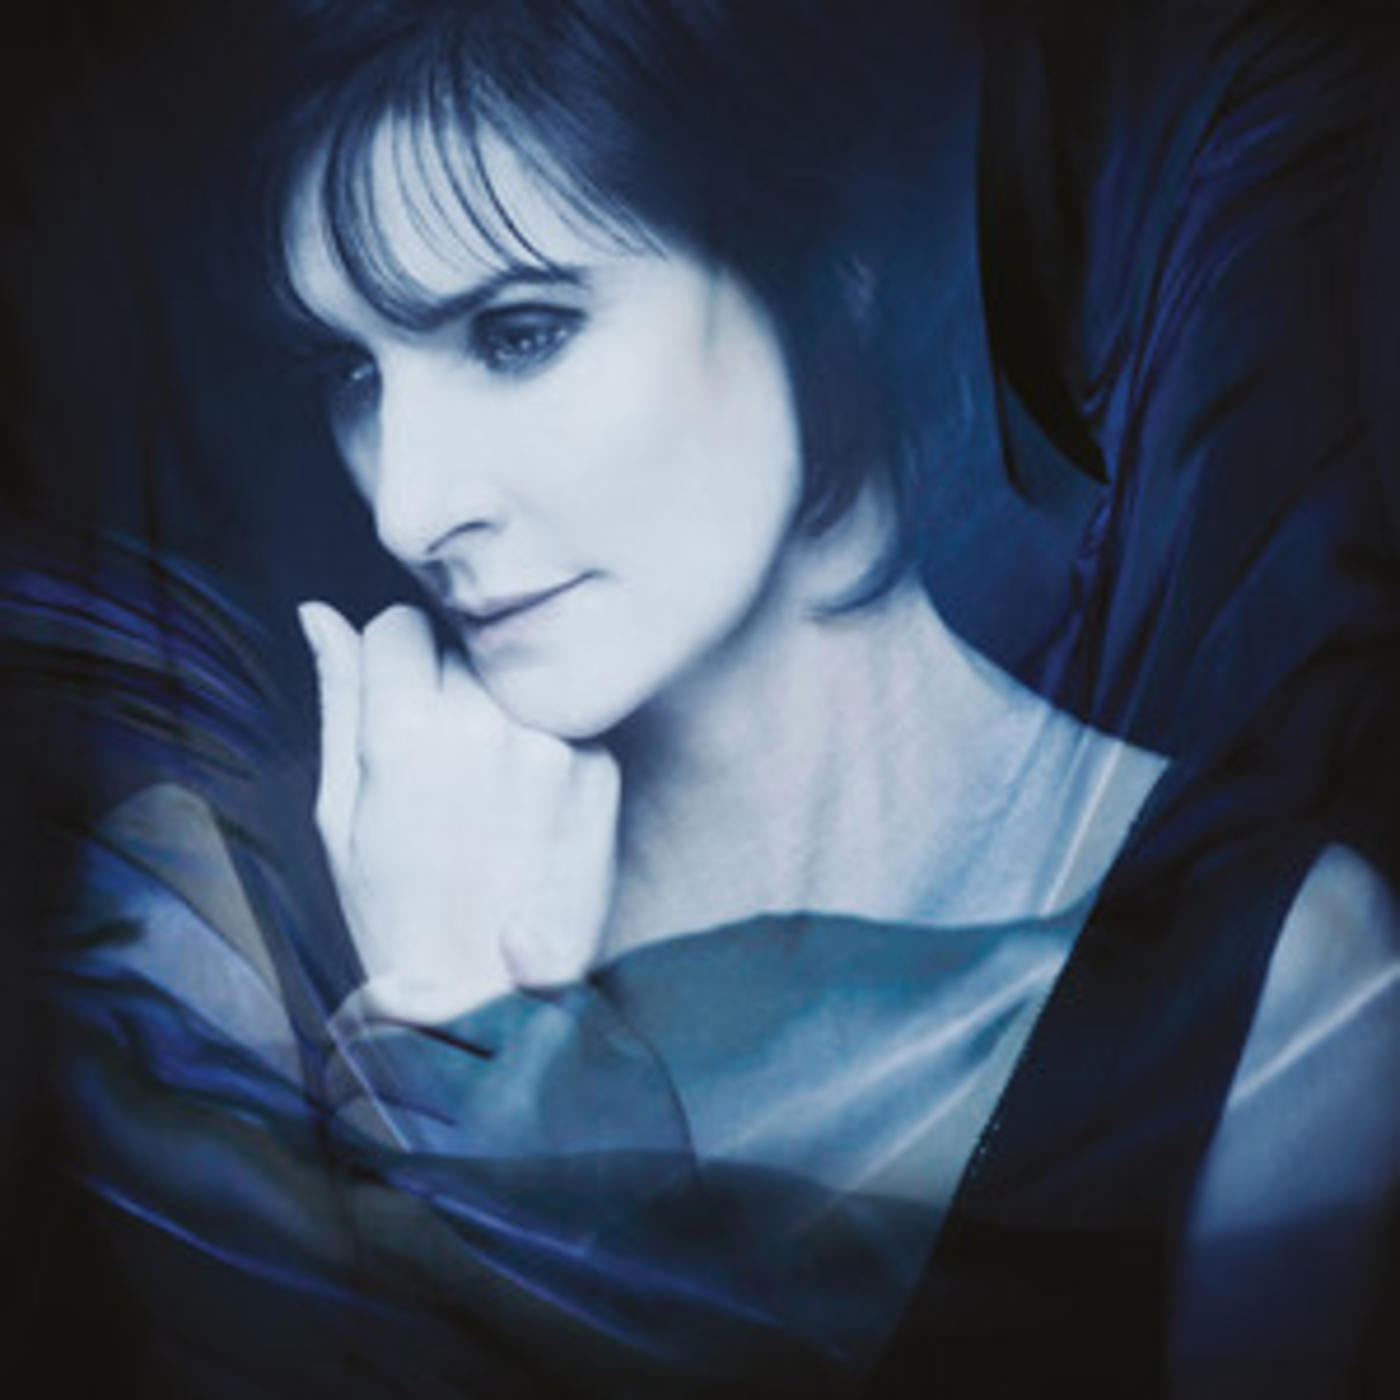 Enya - Official Playlist - Orinoco Flow, Only Time, Wild Child, Caribbean Blue, May It Be